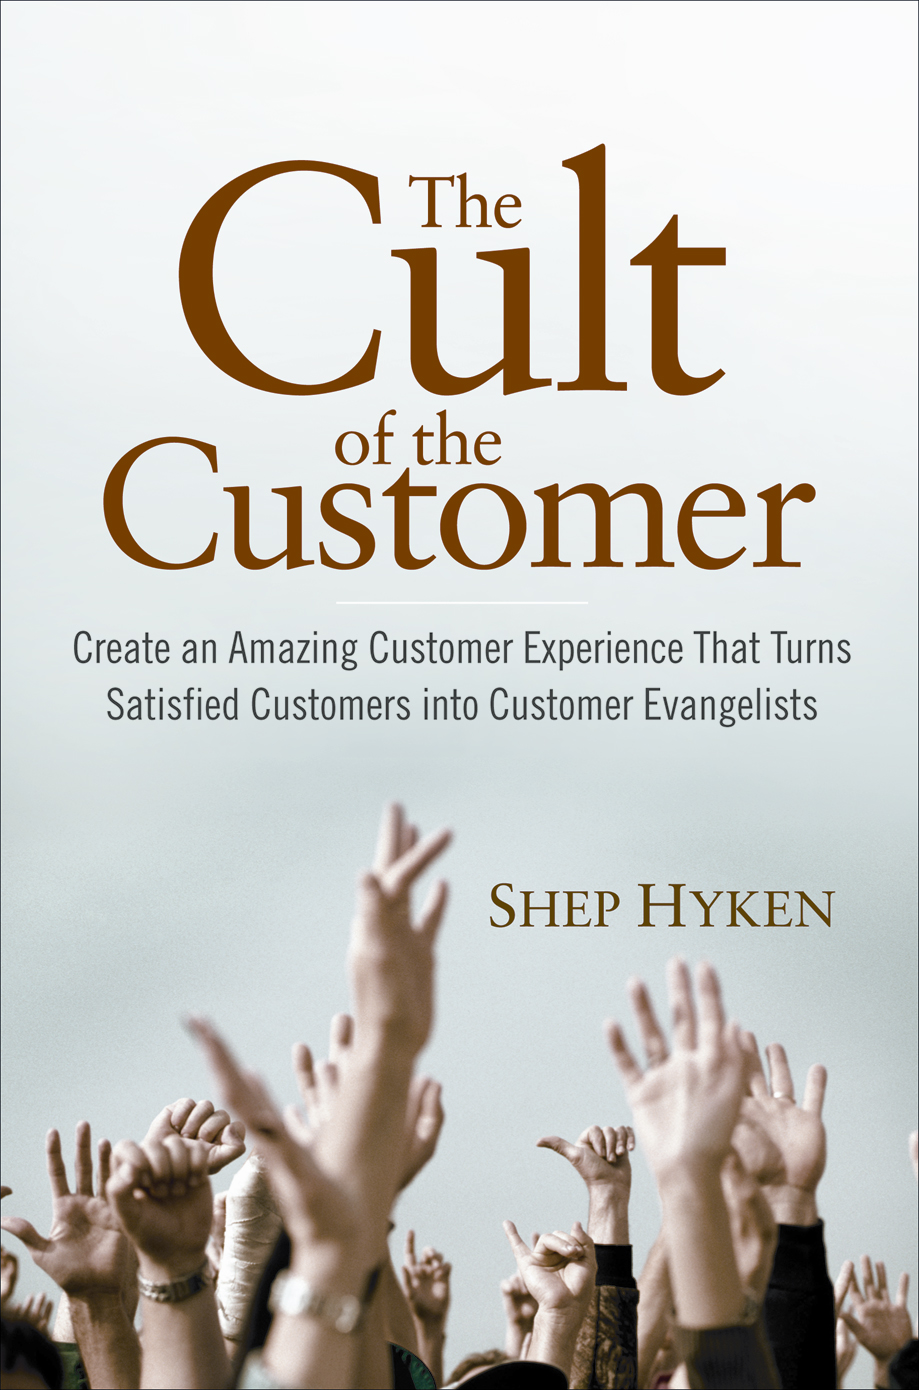 The Cult of the Customer Cover - FINAL